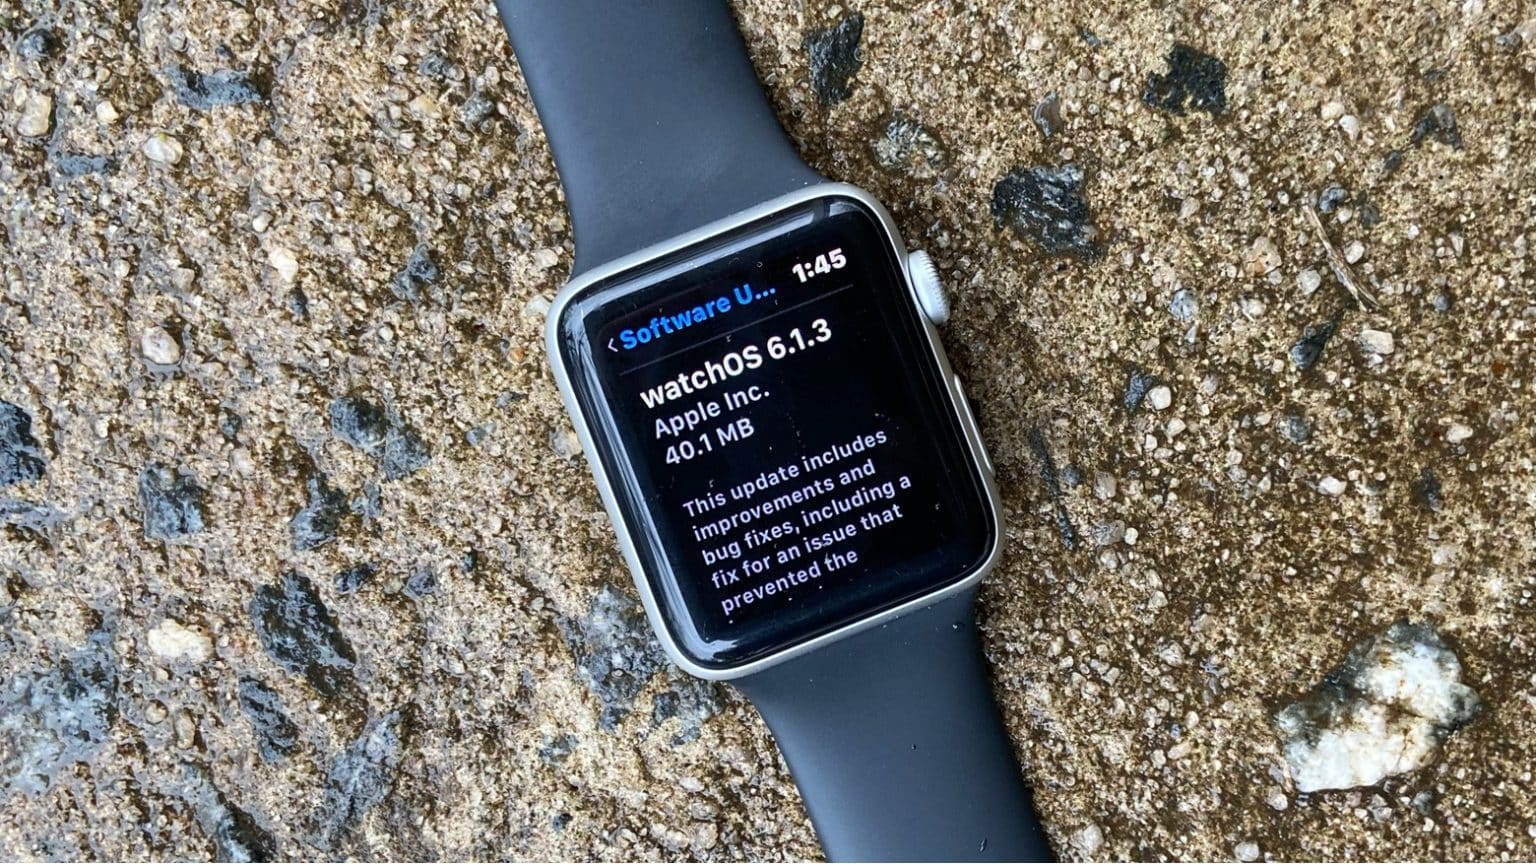 watchOS 6.1.3 update is available now